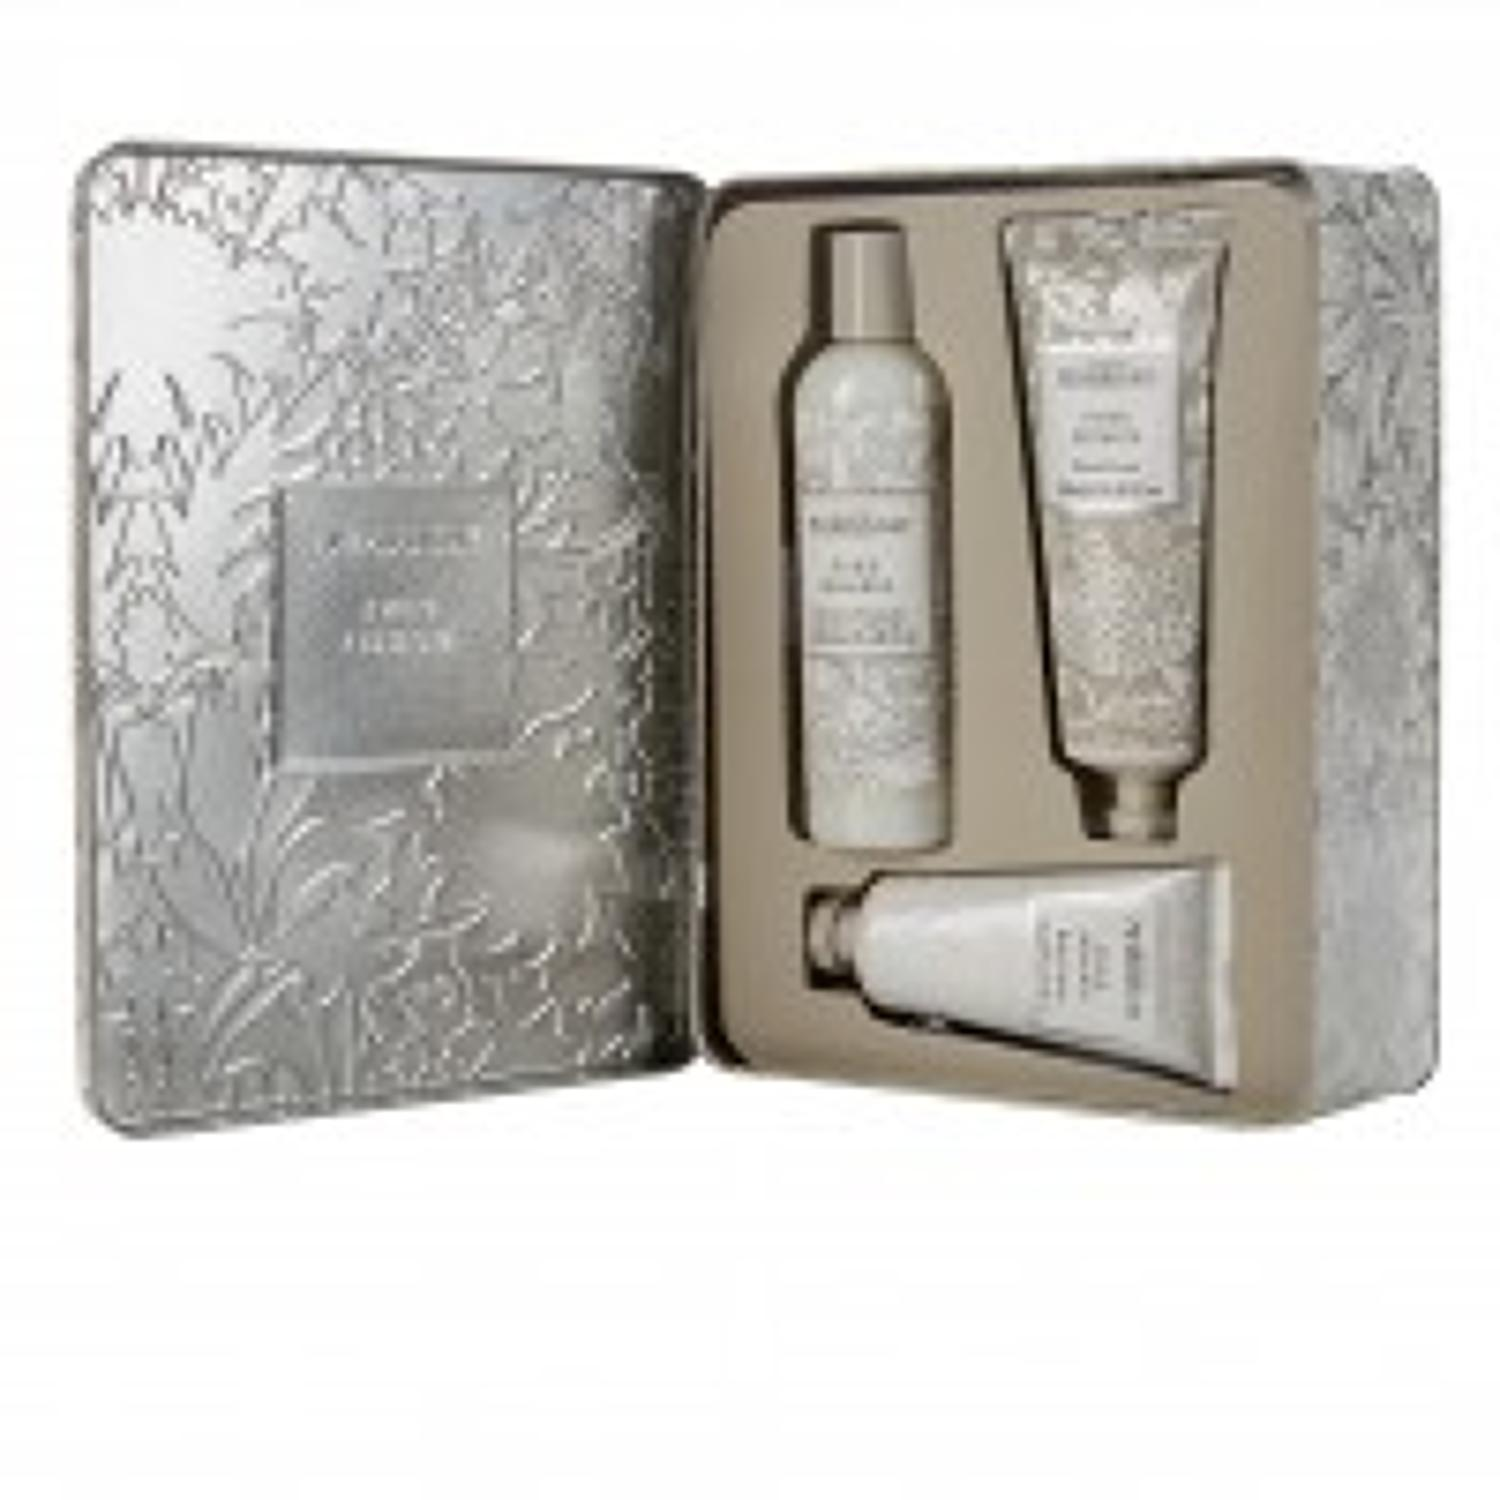 Heathcote & Ivory - Pure Morris - The collection in a decorative tin